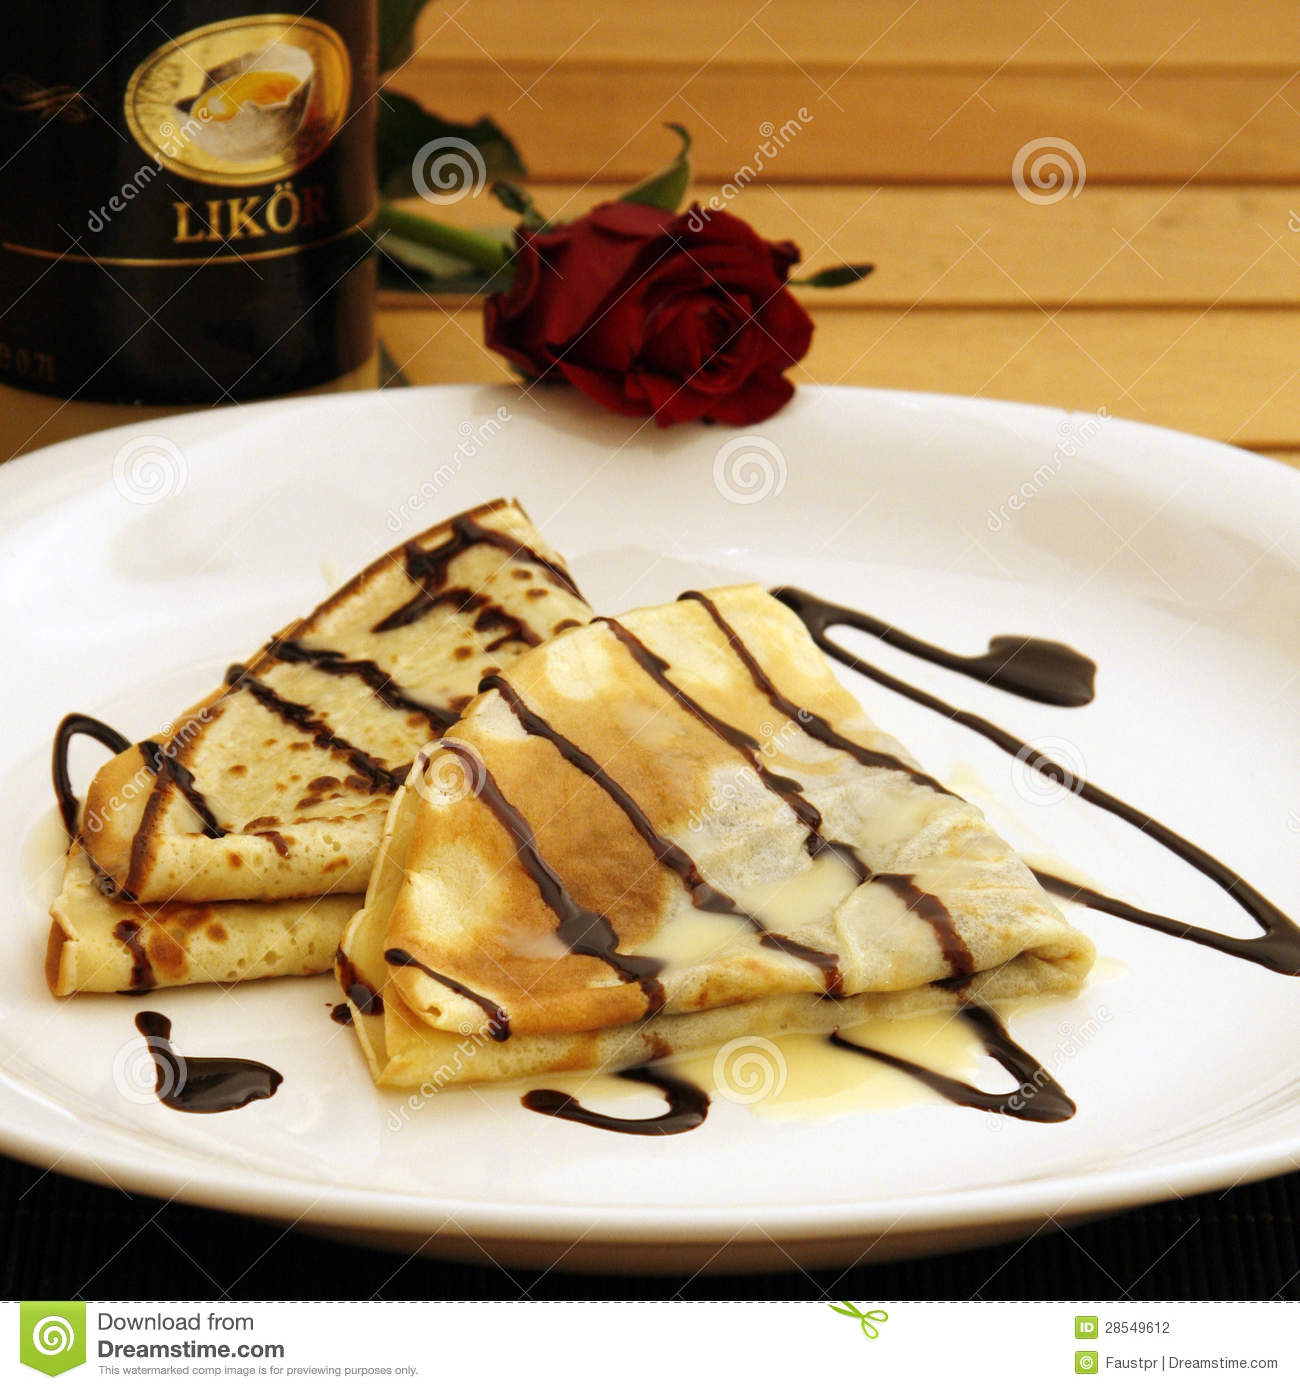 Pancakes with chocolate sauce and eggnog served on a plate with a rose ...